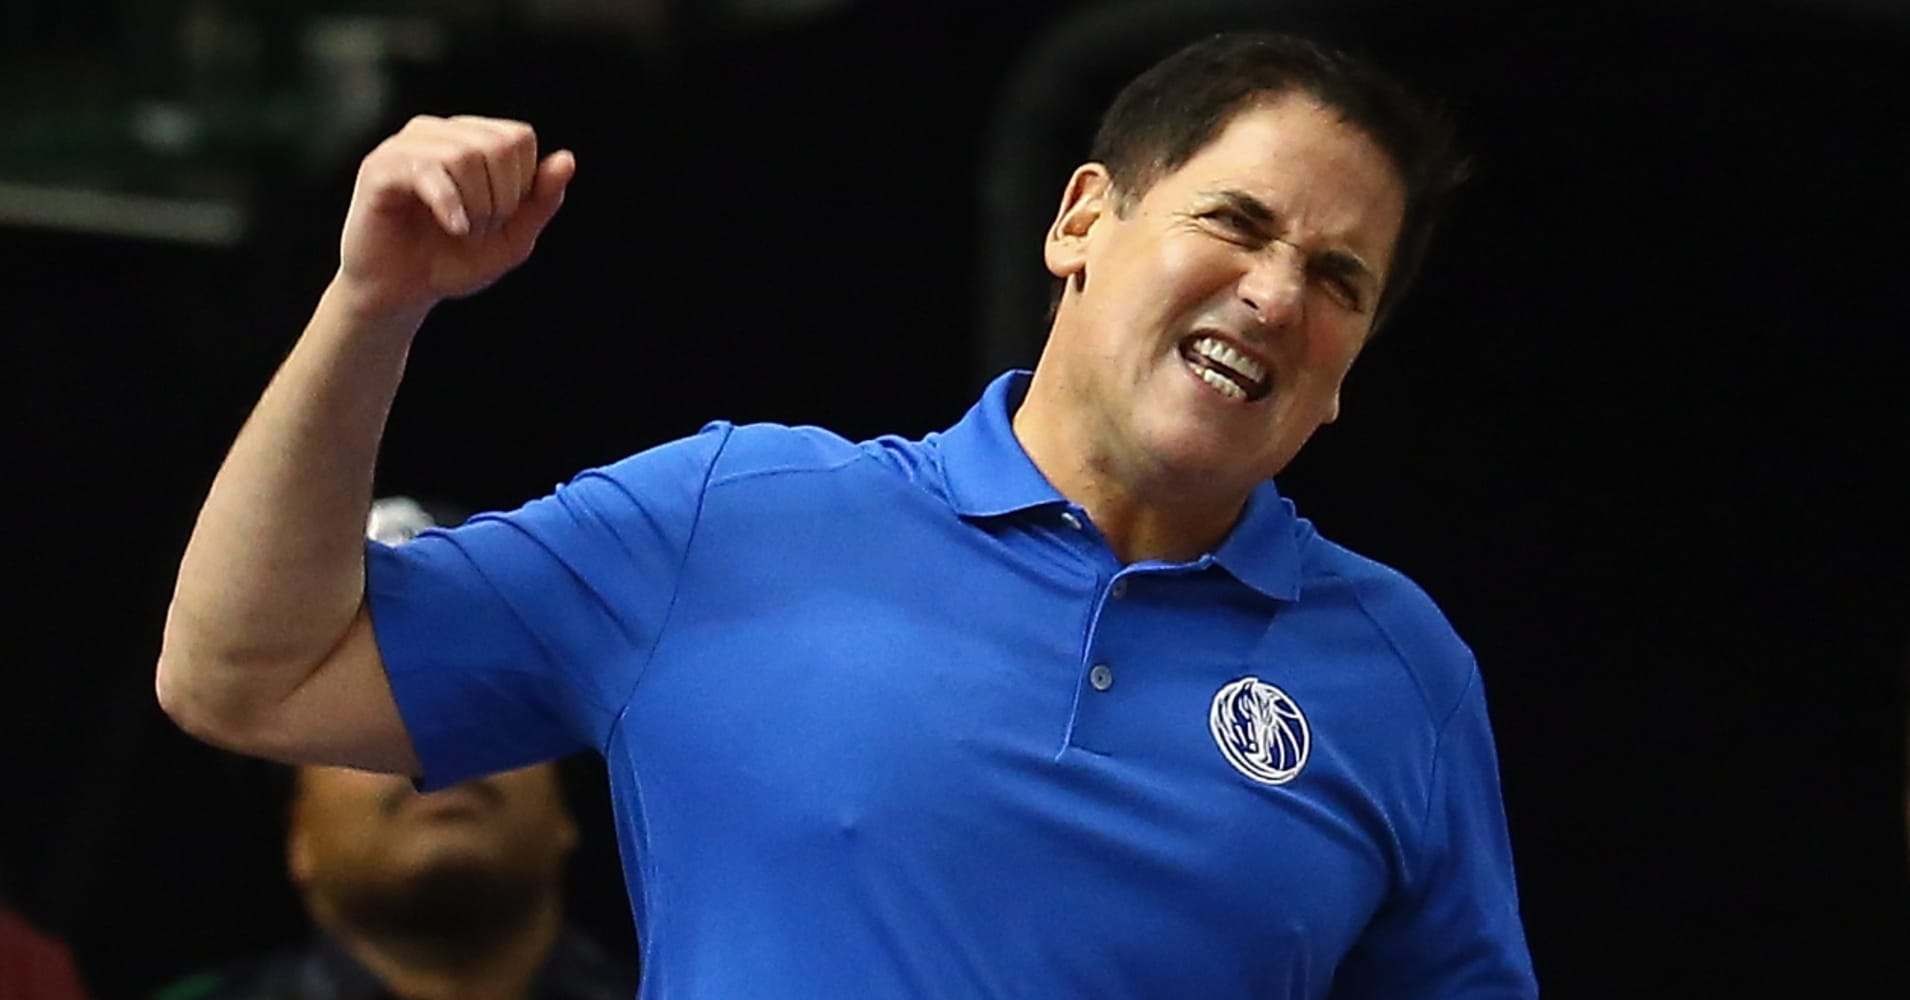 Mark Cuban, owner of the Dallas Mavericks, reacts during a play against the Chicago Bulls at American Airlines Center on January 23, 2015, in Dallas.